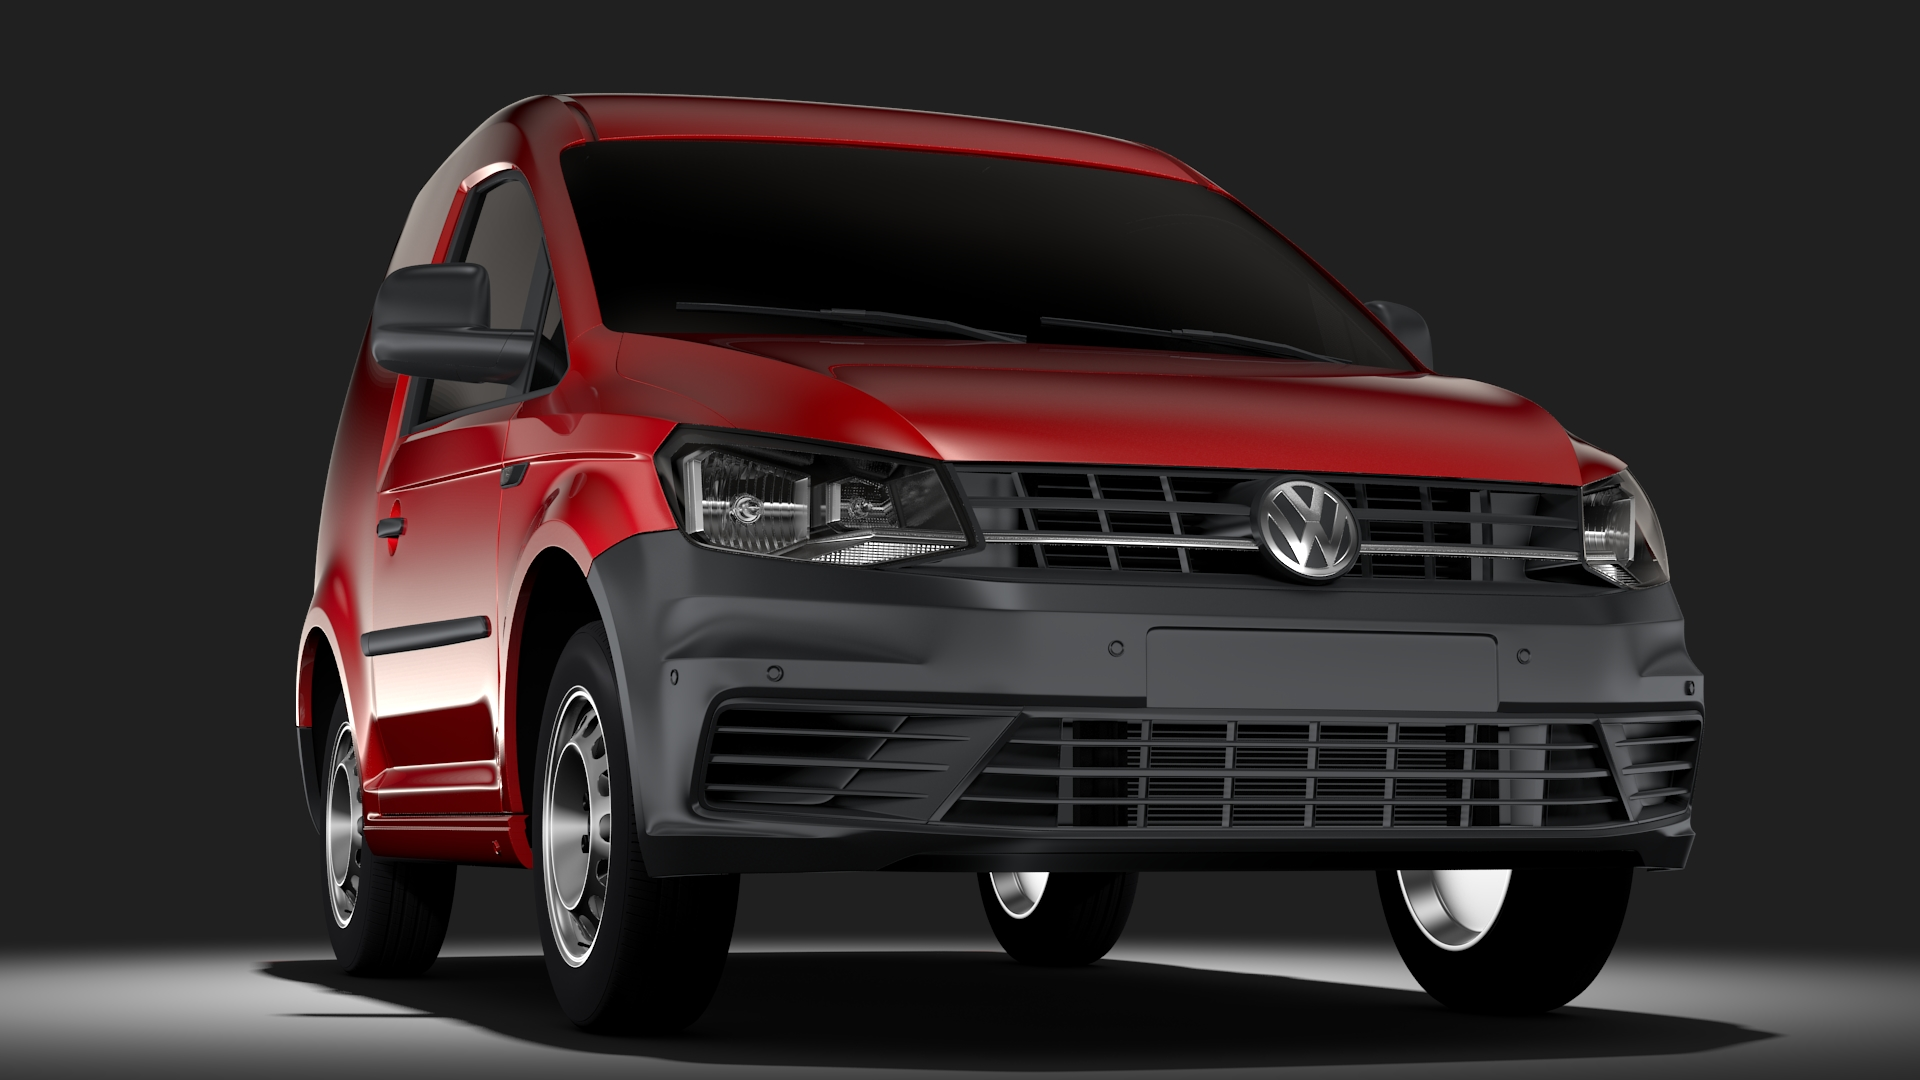 volkswagen caddy one man van 2017 3d model max fbx c4d lwo ma mb hrc xsi obj 275440